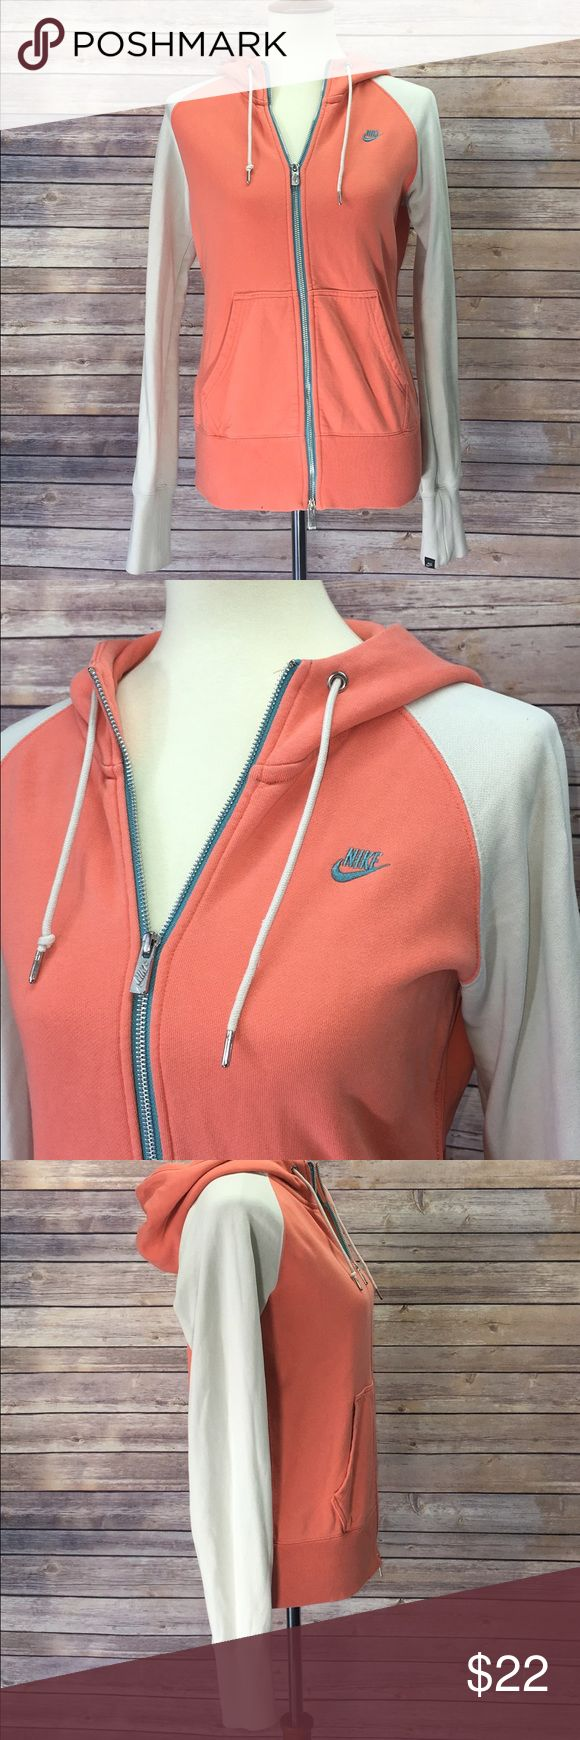 """Nike SportsWear Women's Zip Up Hoodie Size Medium 🔹Colors: Peach/Turquoise/Cream                                    🔹Worn In But In Good Condition (All Details In Pics)      🔹100% Cotton                                                                    🔹Length: Shoulder to Bottom 24.5"""" (Laid Flat)               🔹Armpit to Armpit: 20"""" (Laid Flat) Nike Tops Sweatshirts & Hoodies"""